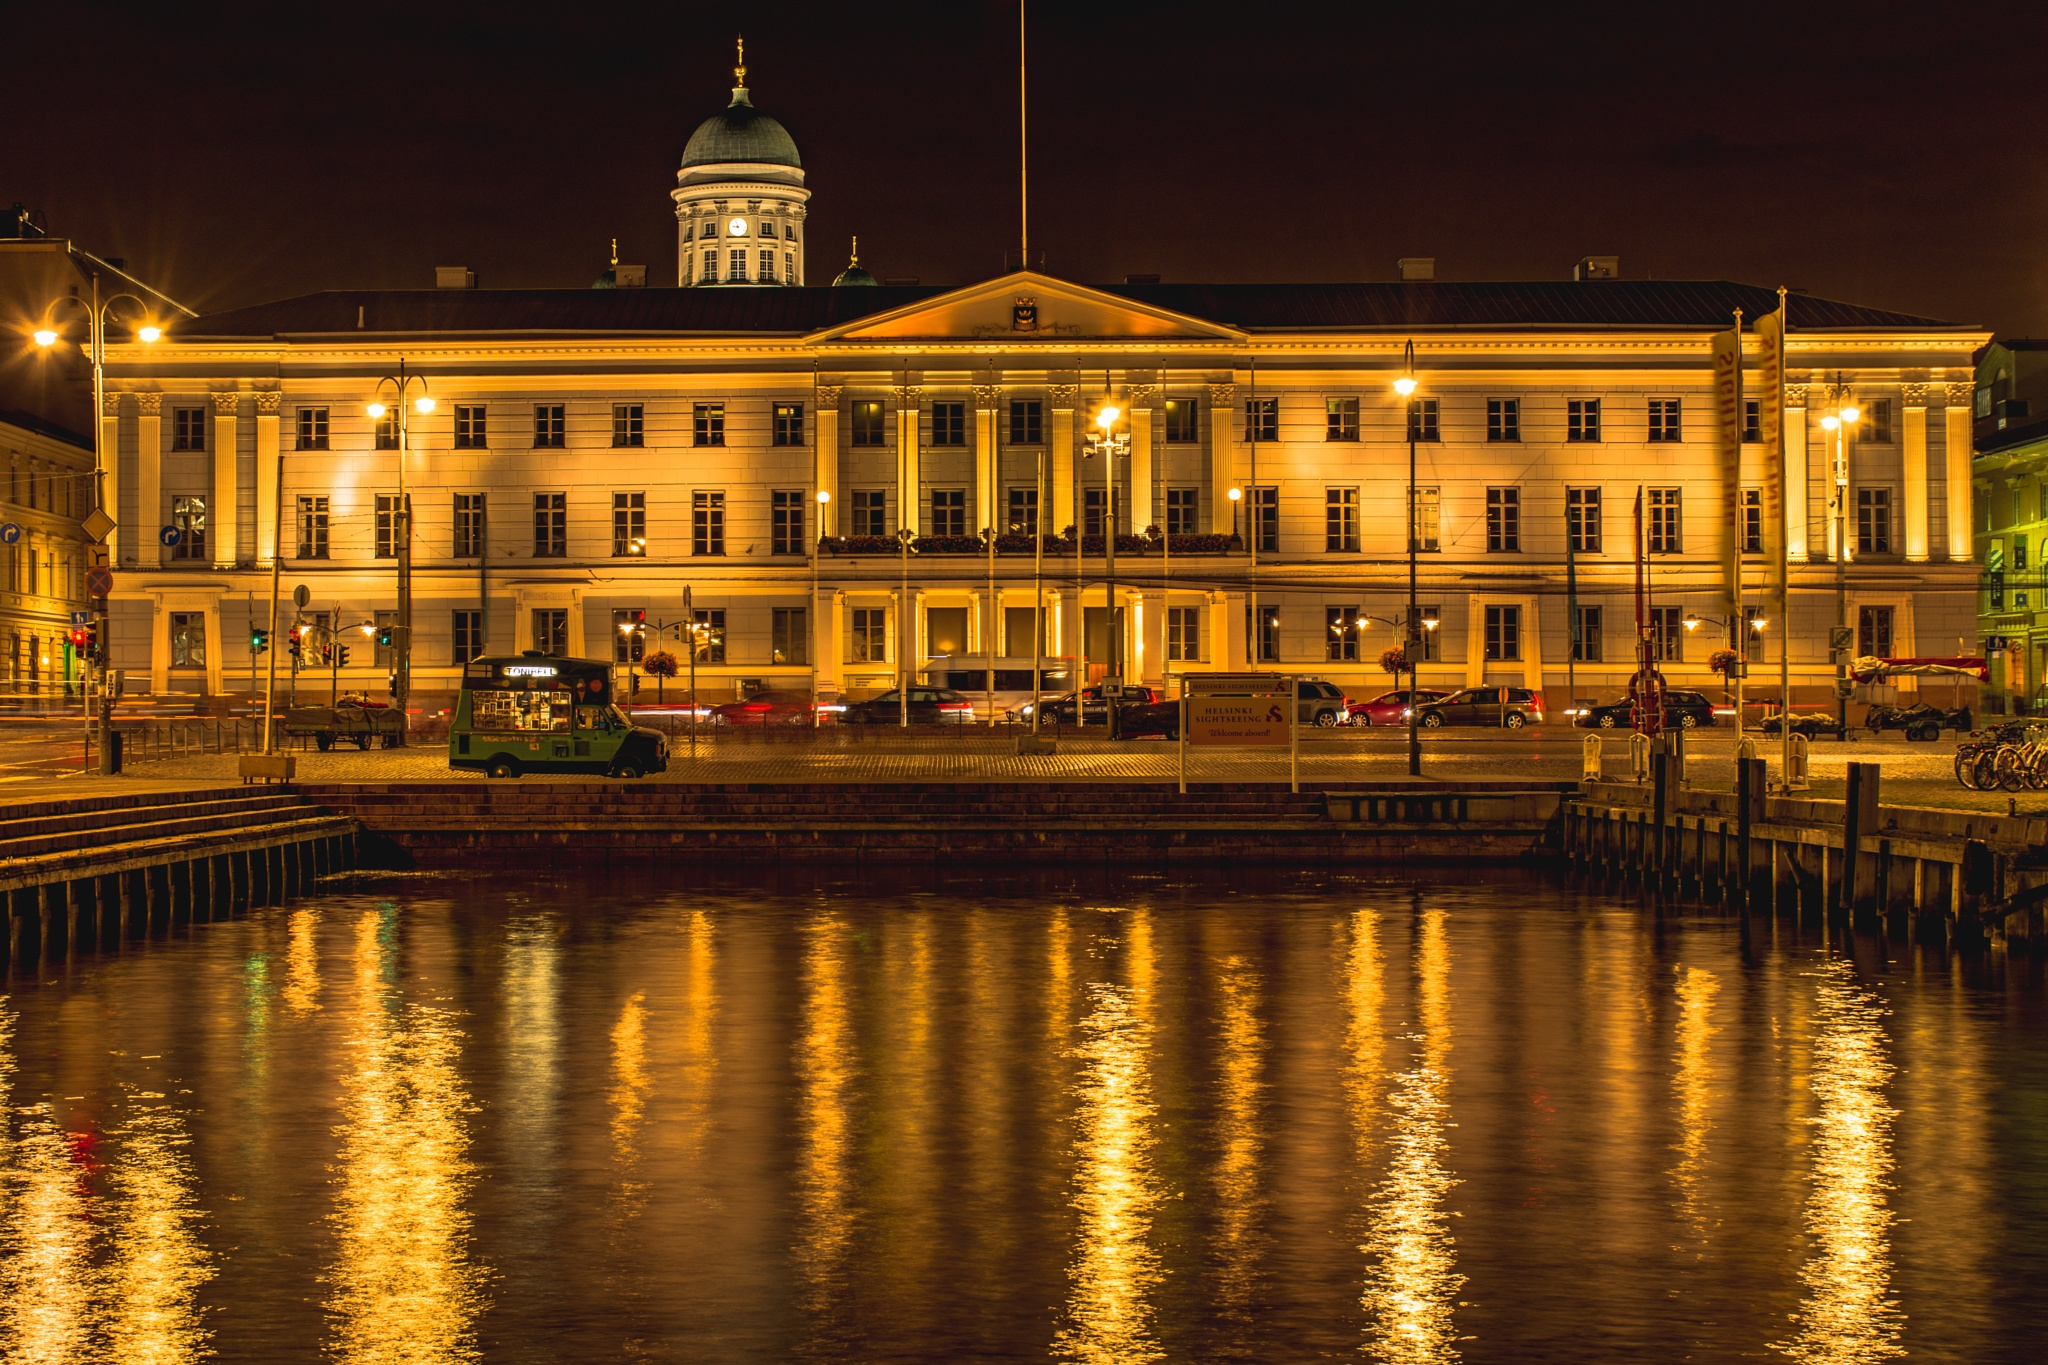 Helsinki City Hall by Matti